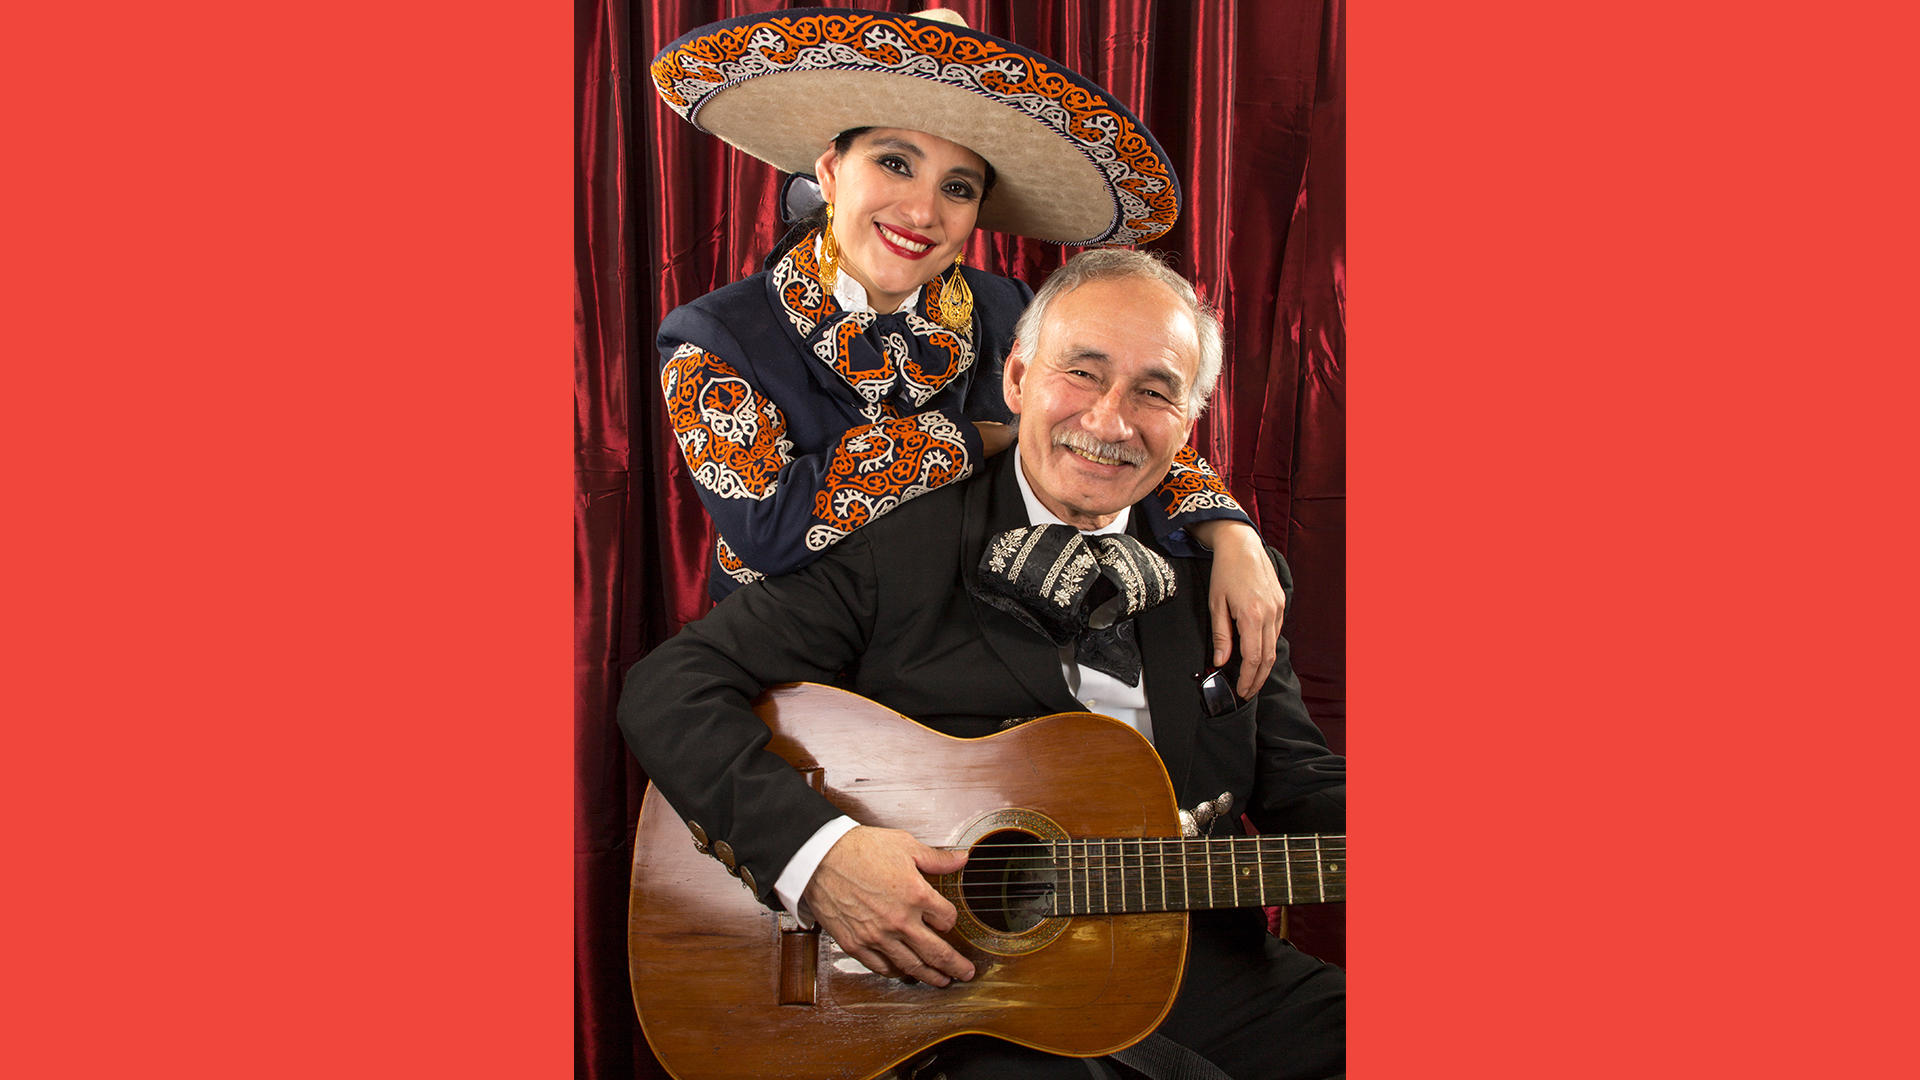 Veronica Robles and Willy Lopez, photo by Tailor-Made